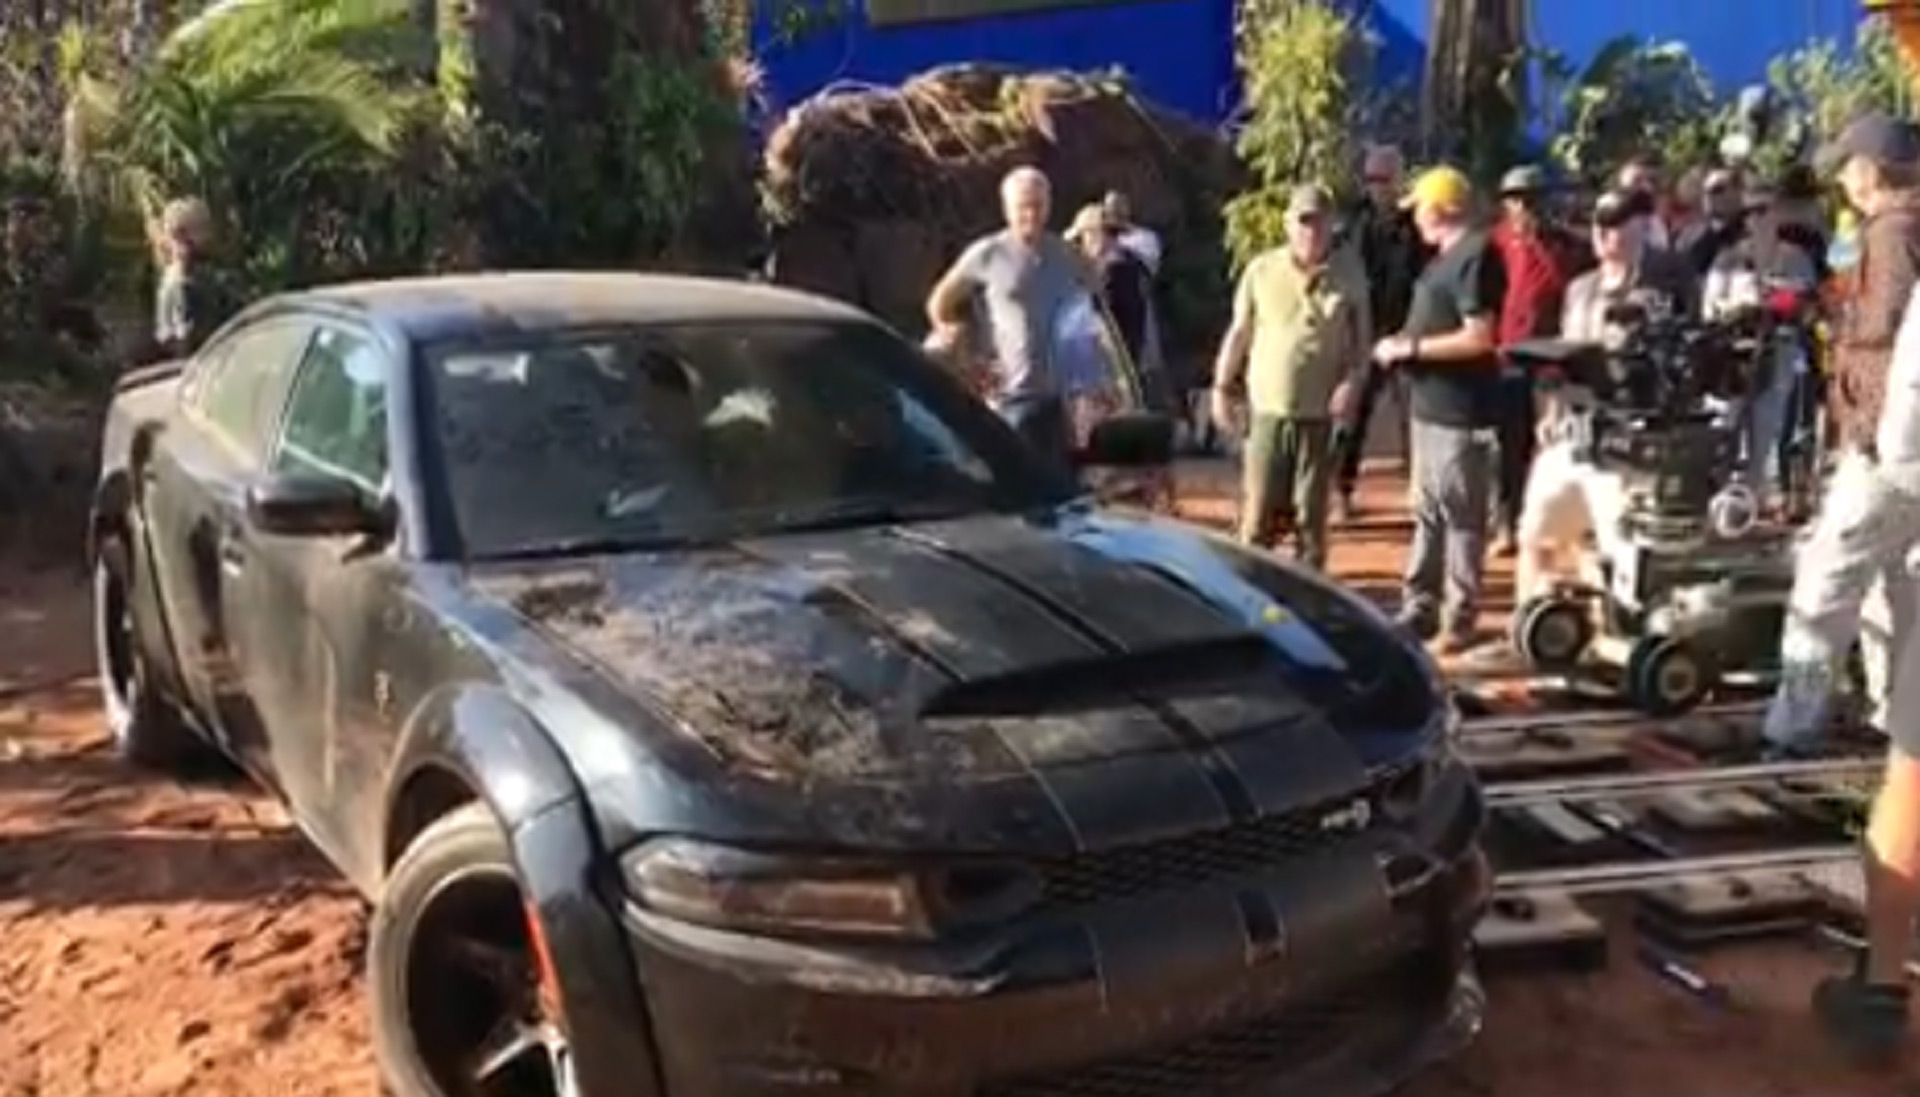 Vin Diesel, also known as Dominic 'Dom' Toretto to all devout Fast & Furious fans, has posted a video on his Instagram channel featuring him climbing out of his tuned Dodge Charger SRT Hellcat Widebody.